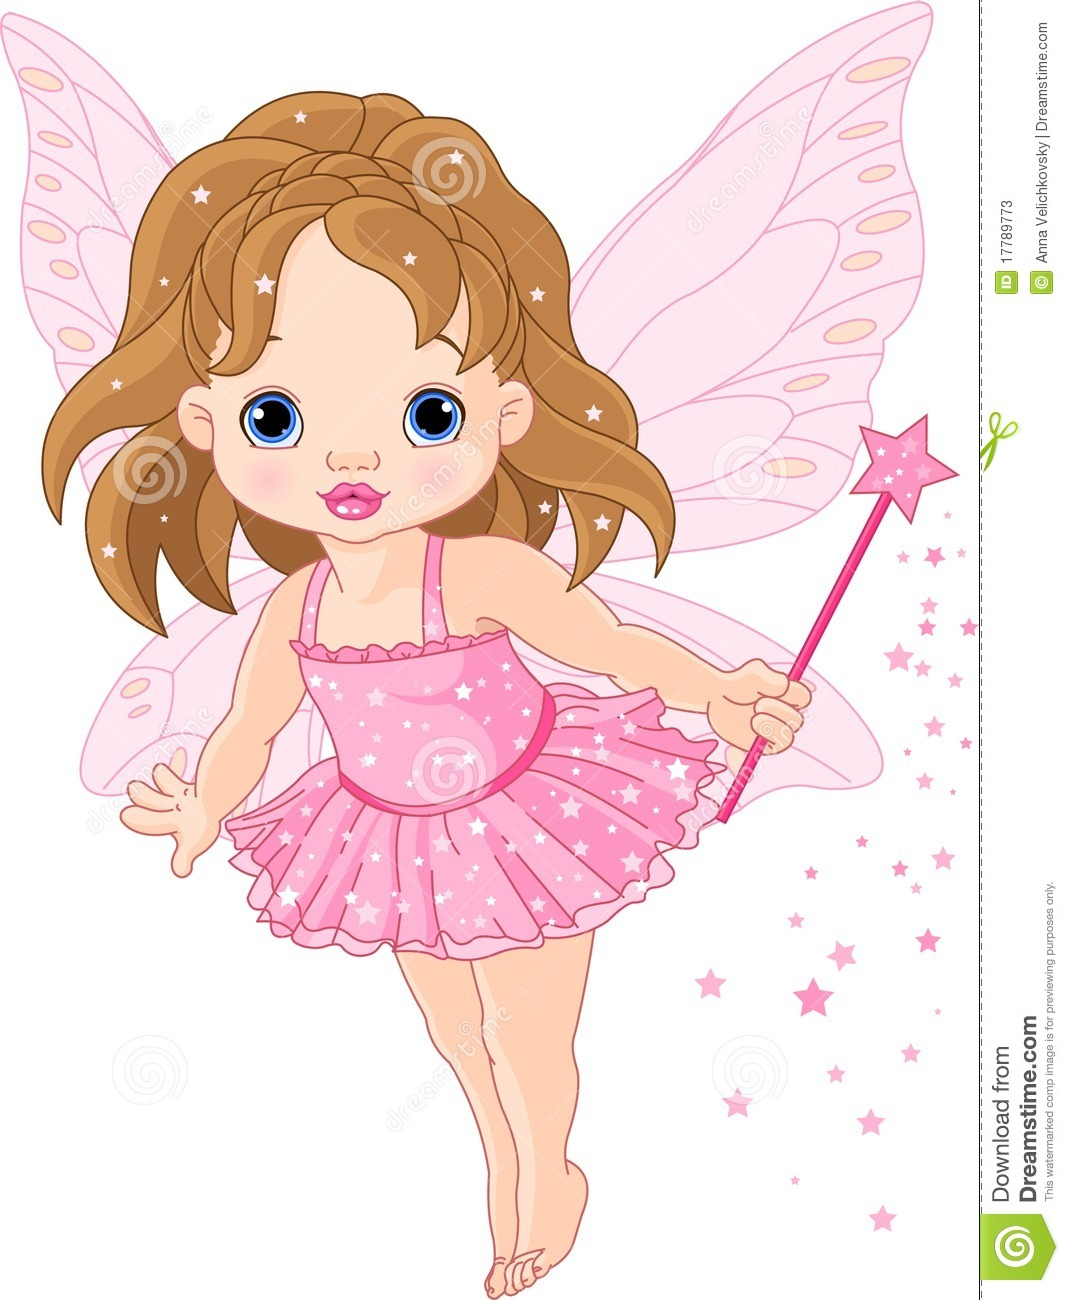 Cute little baby fairy stock vector. Illustration of ...